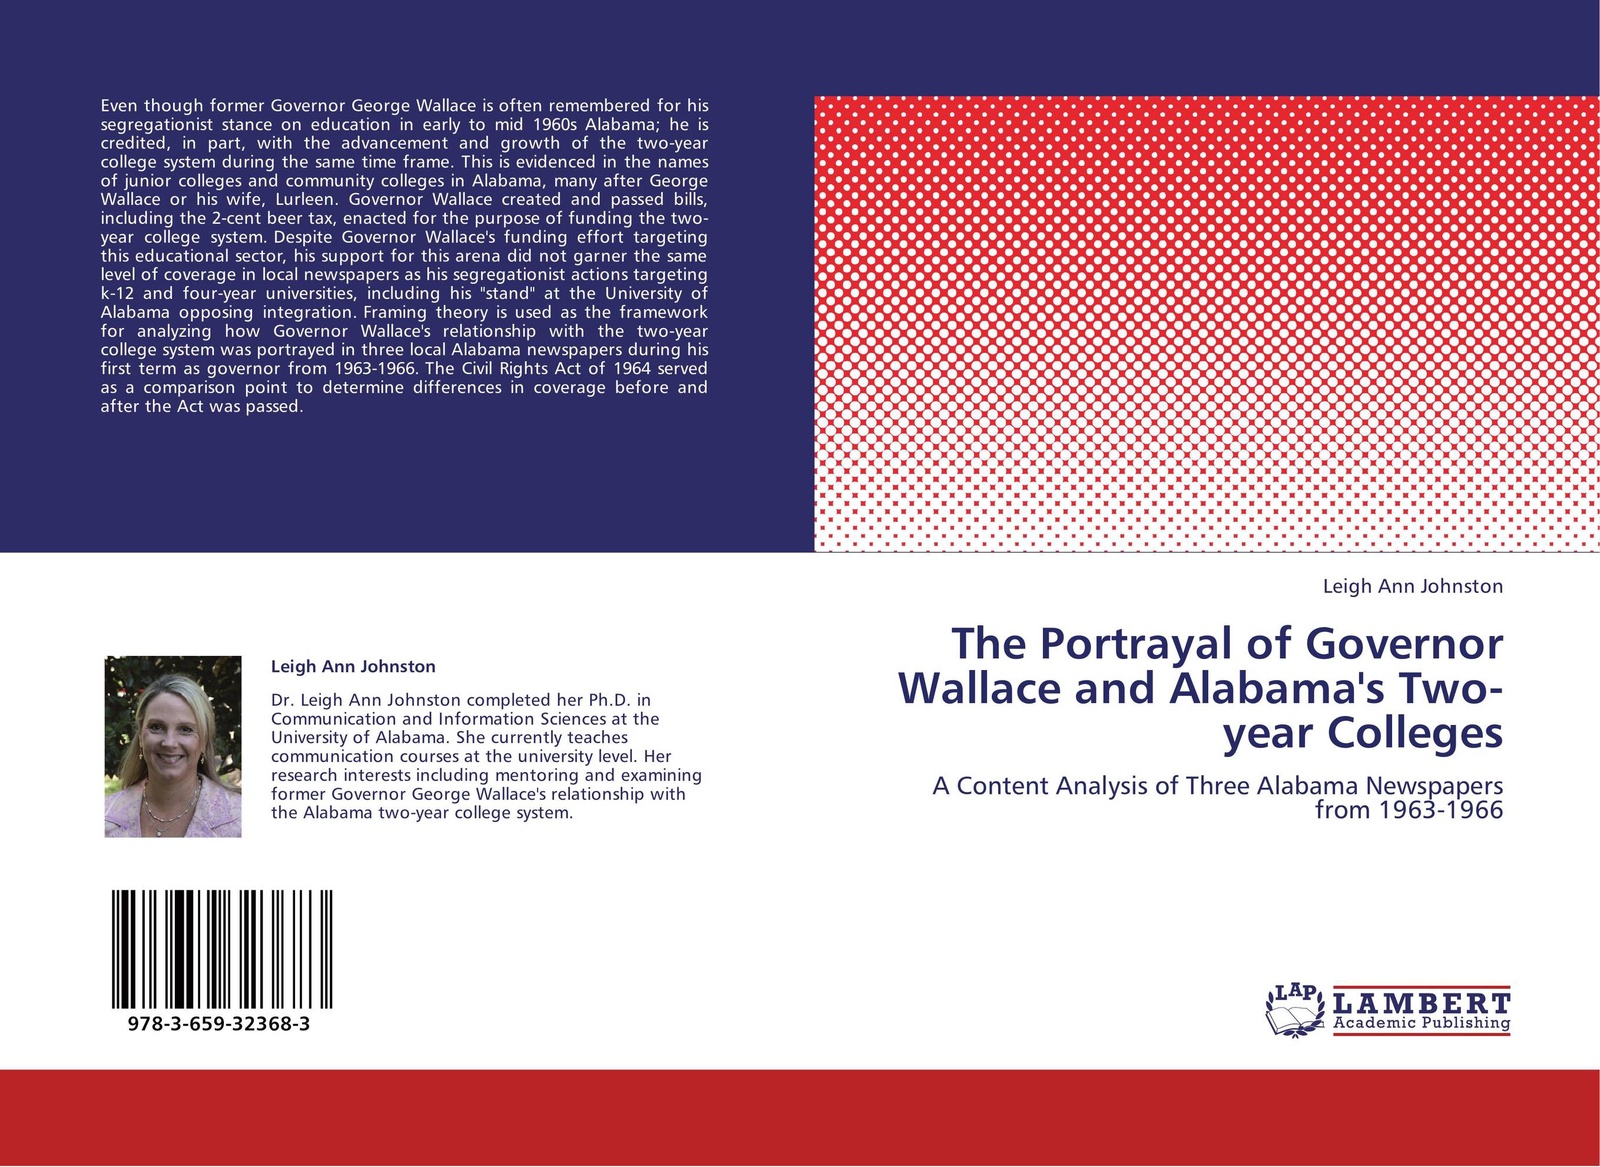 Leigh Ann Johnston The Portrayal of Governor Wallace and Alabama's Two-year Colleges implementation of rf based speed governor system in public sector